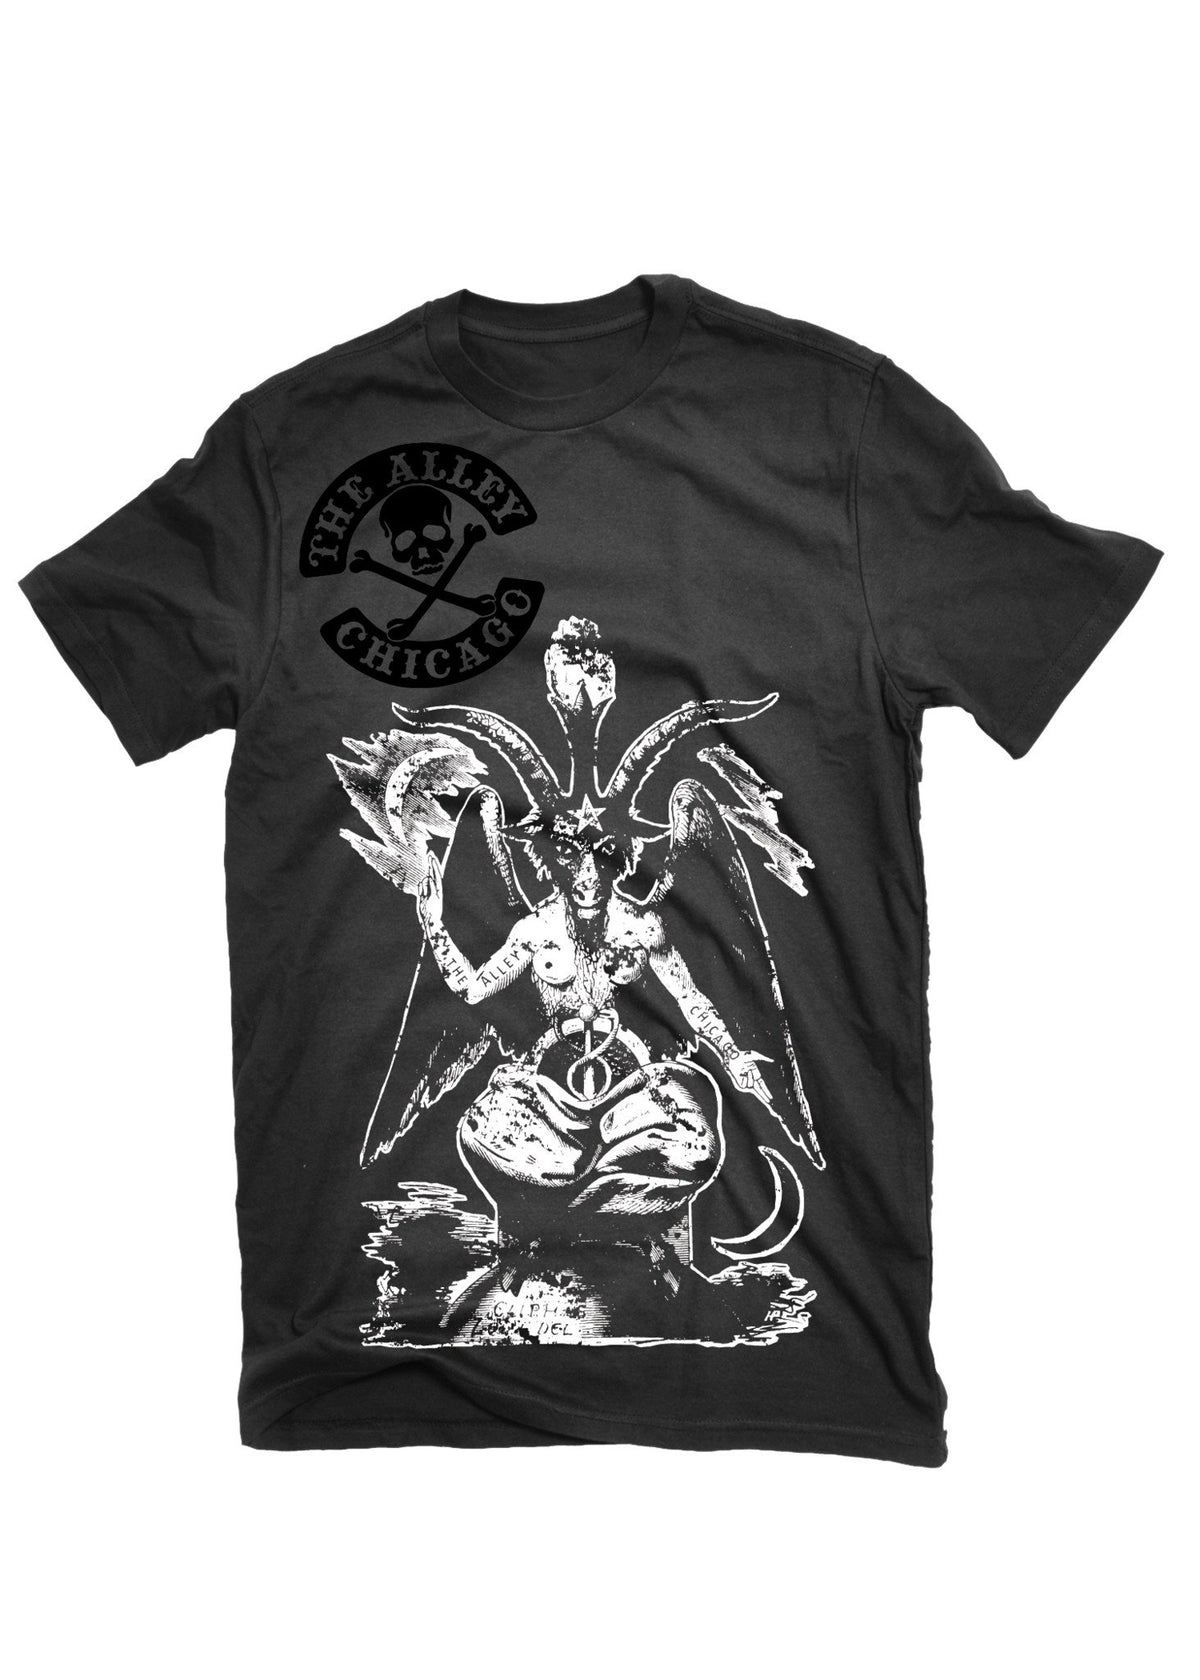 T-Shirts - The Alley Chicago Big Baphomet T- Shirt